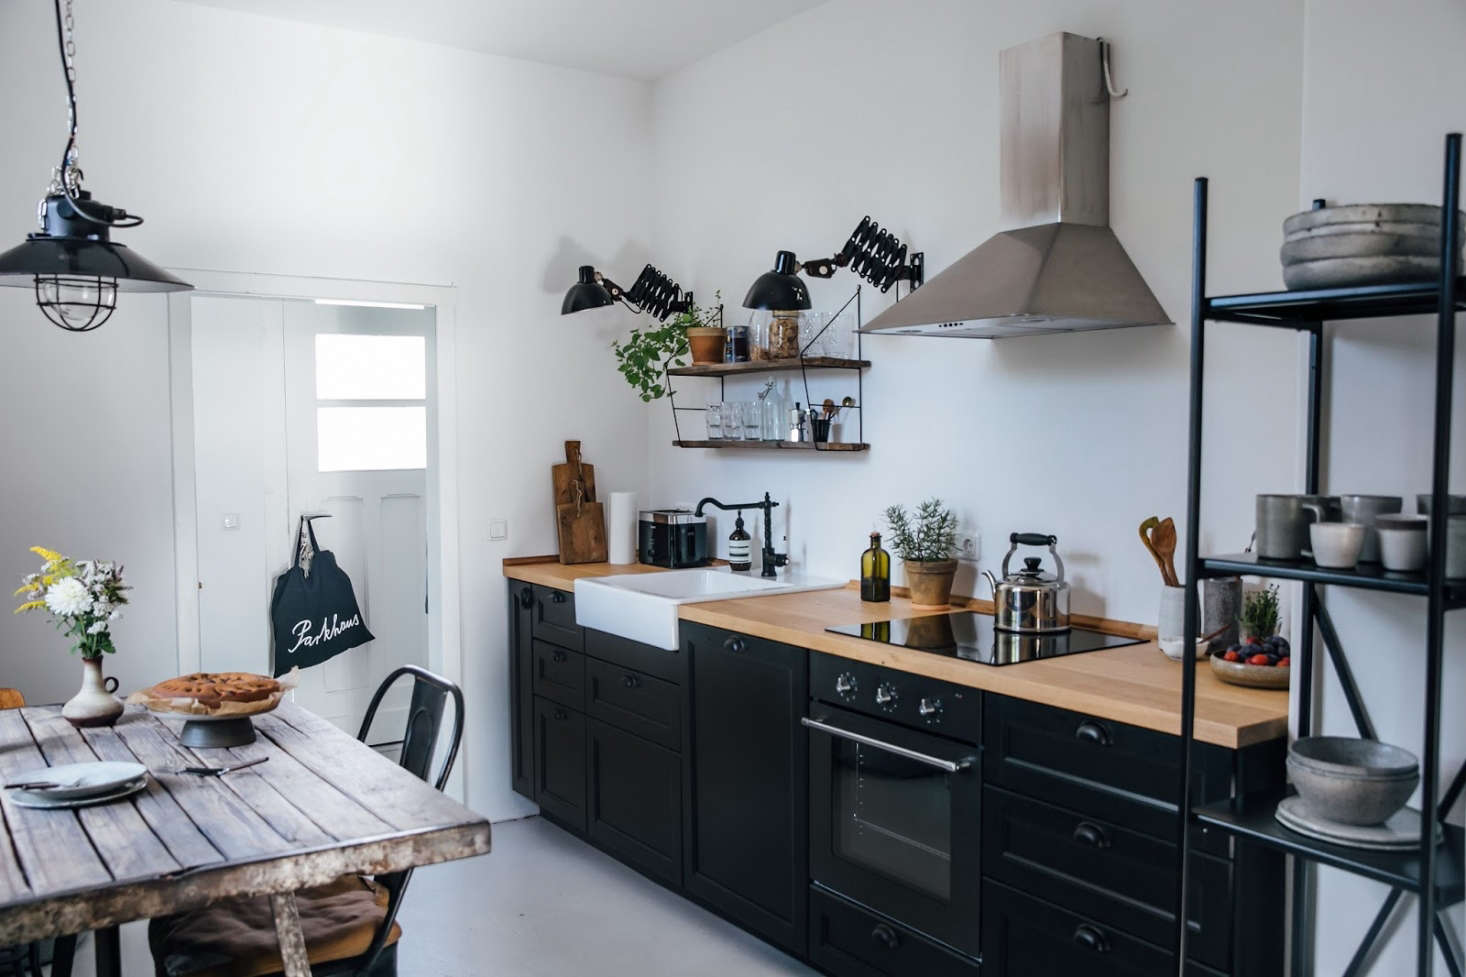 In Praise Of Ikea 20 Ikea Kitchens From The Remodelista Archives Remodelista